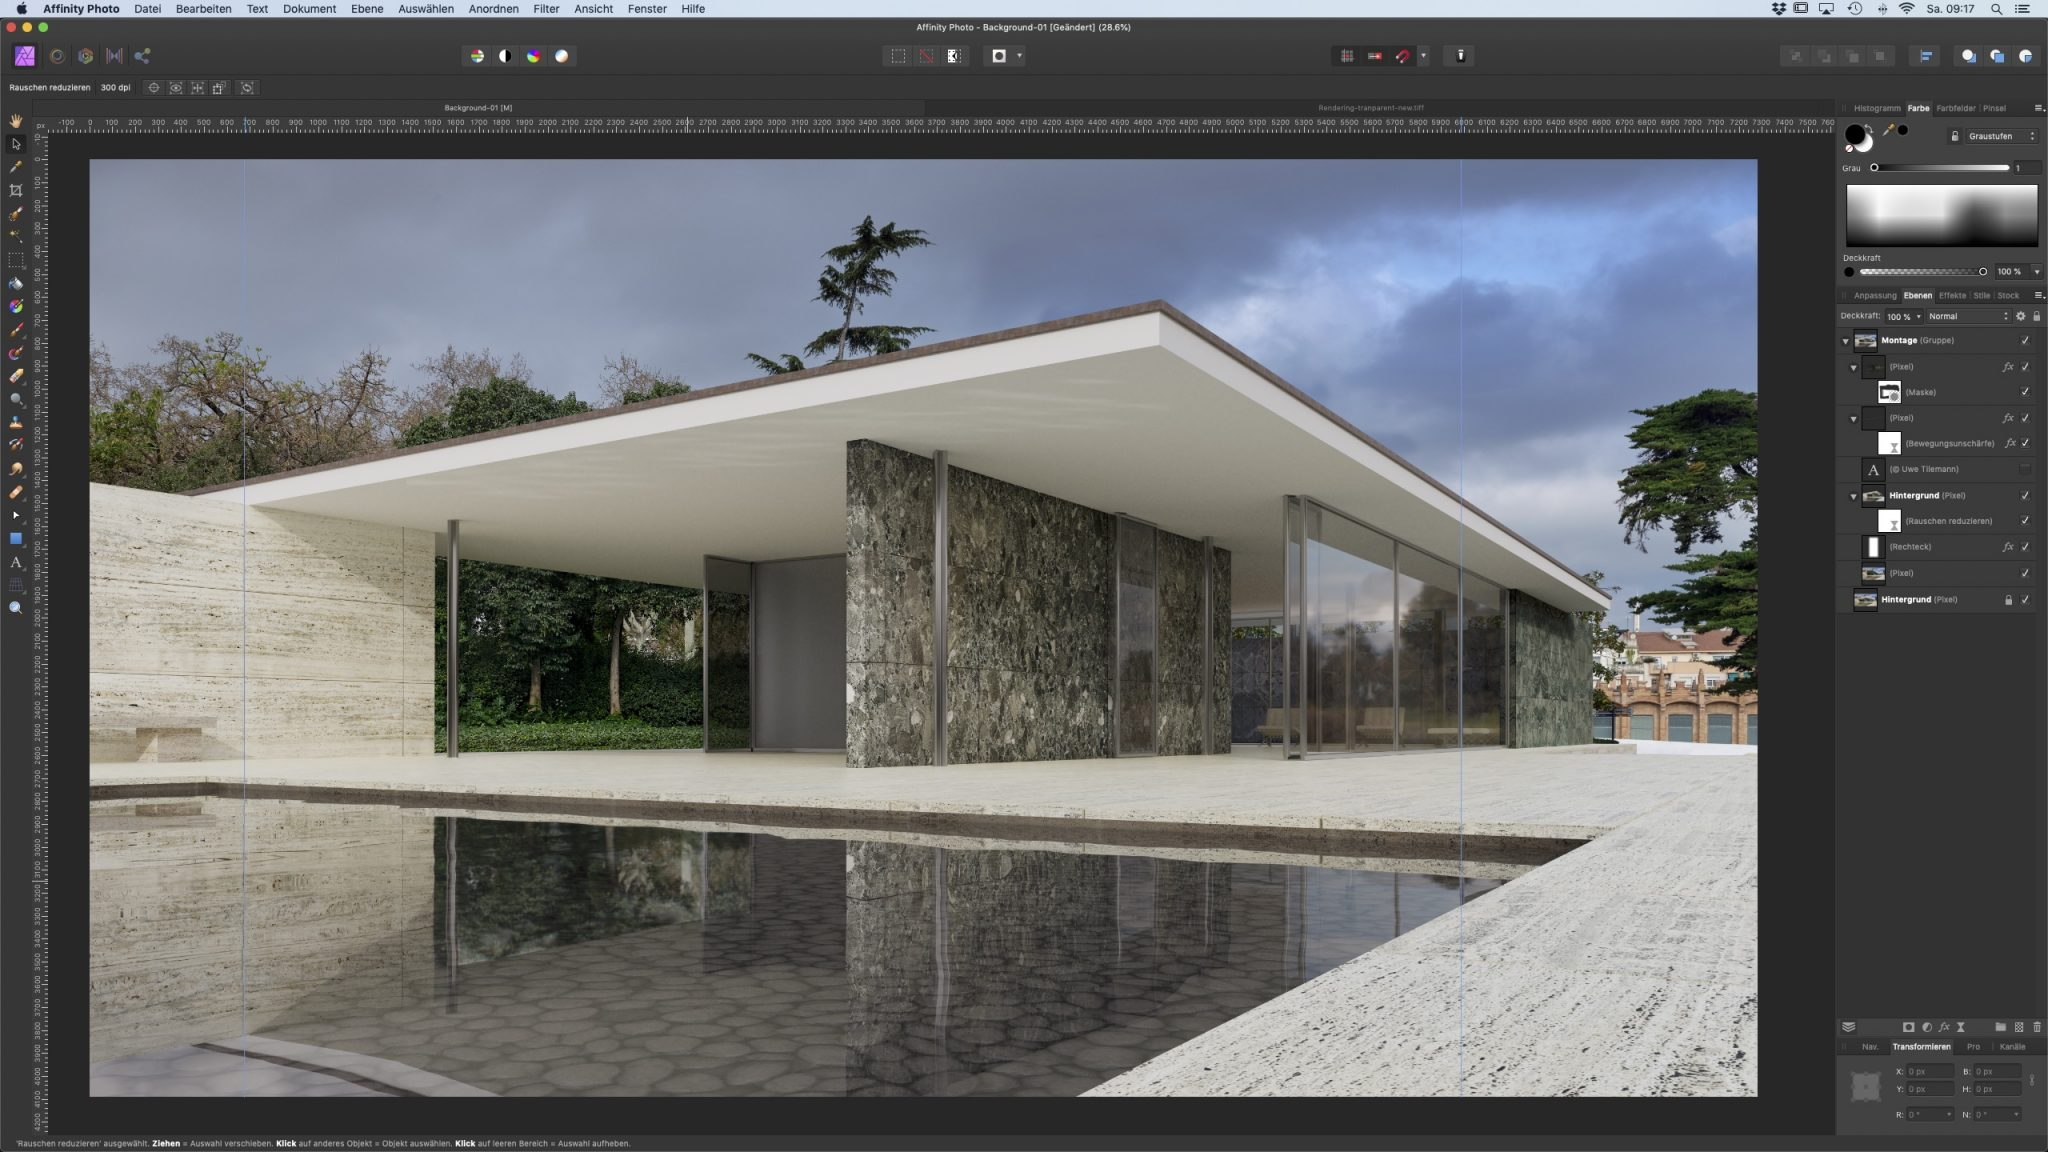 Final composition of the Barcelona Pavilion in Affinity Photo.